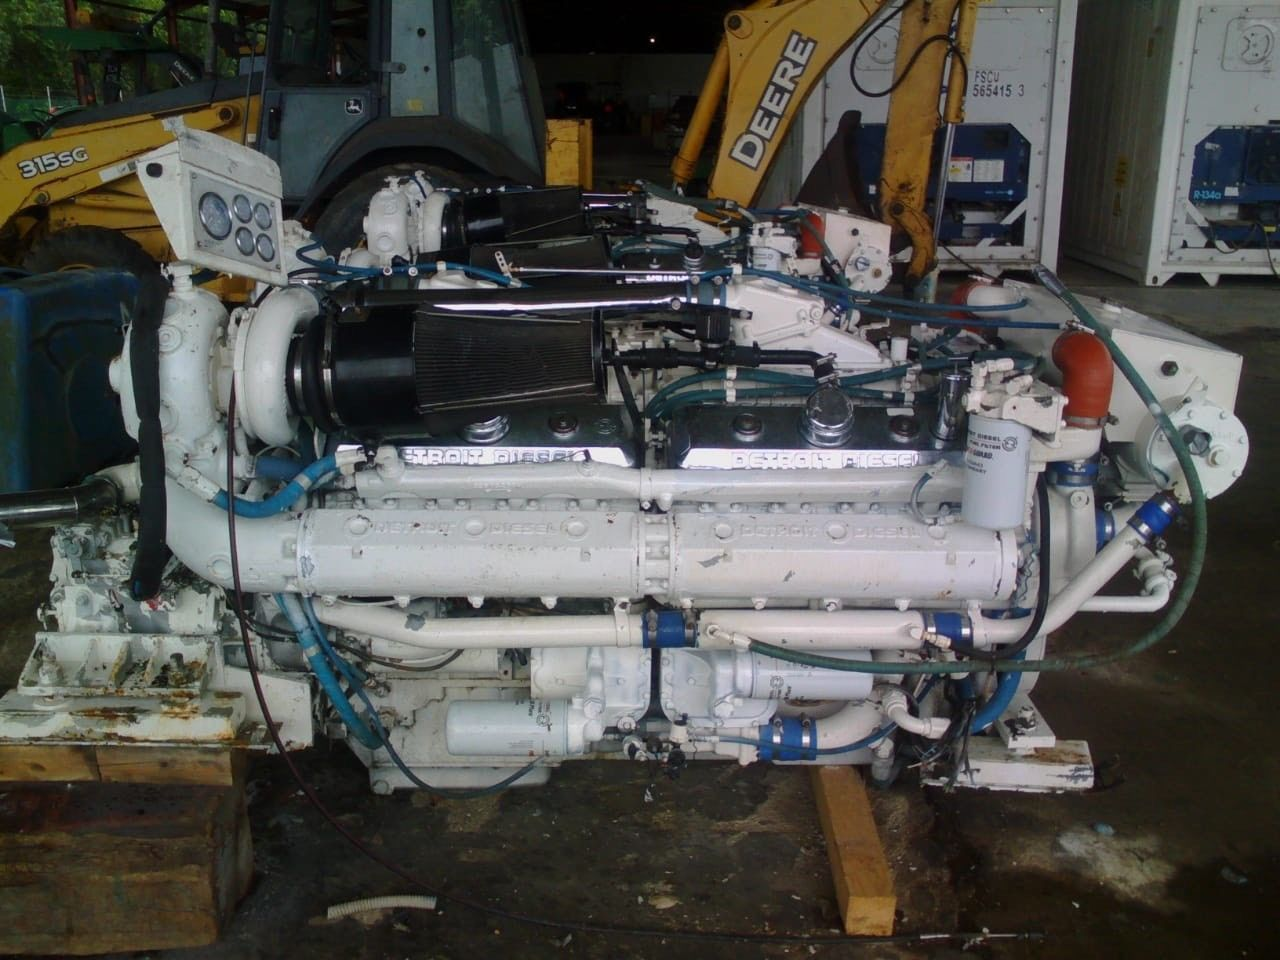 16V-92TA USED MARINE ENGINES